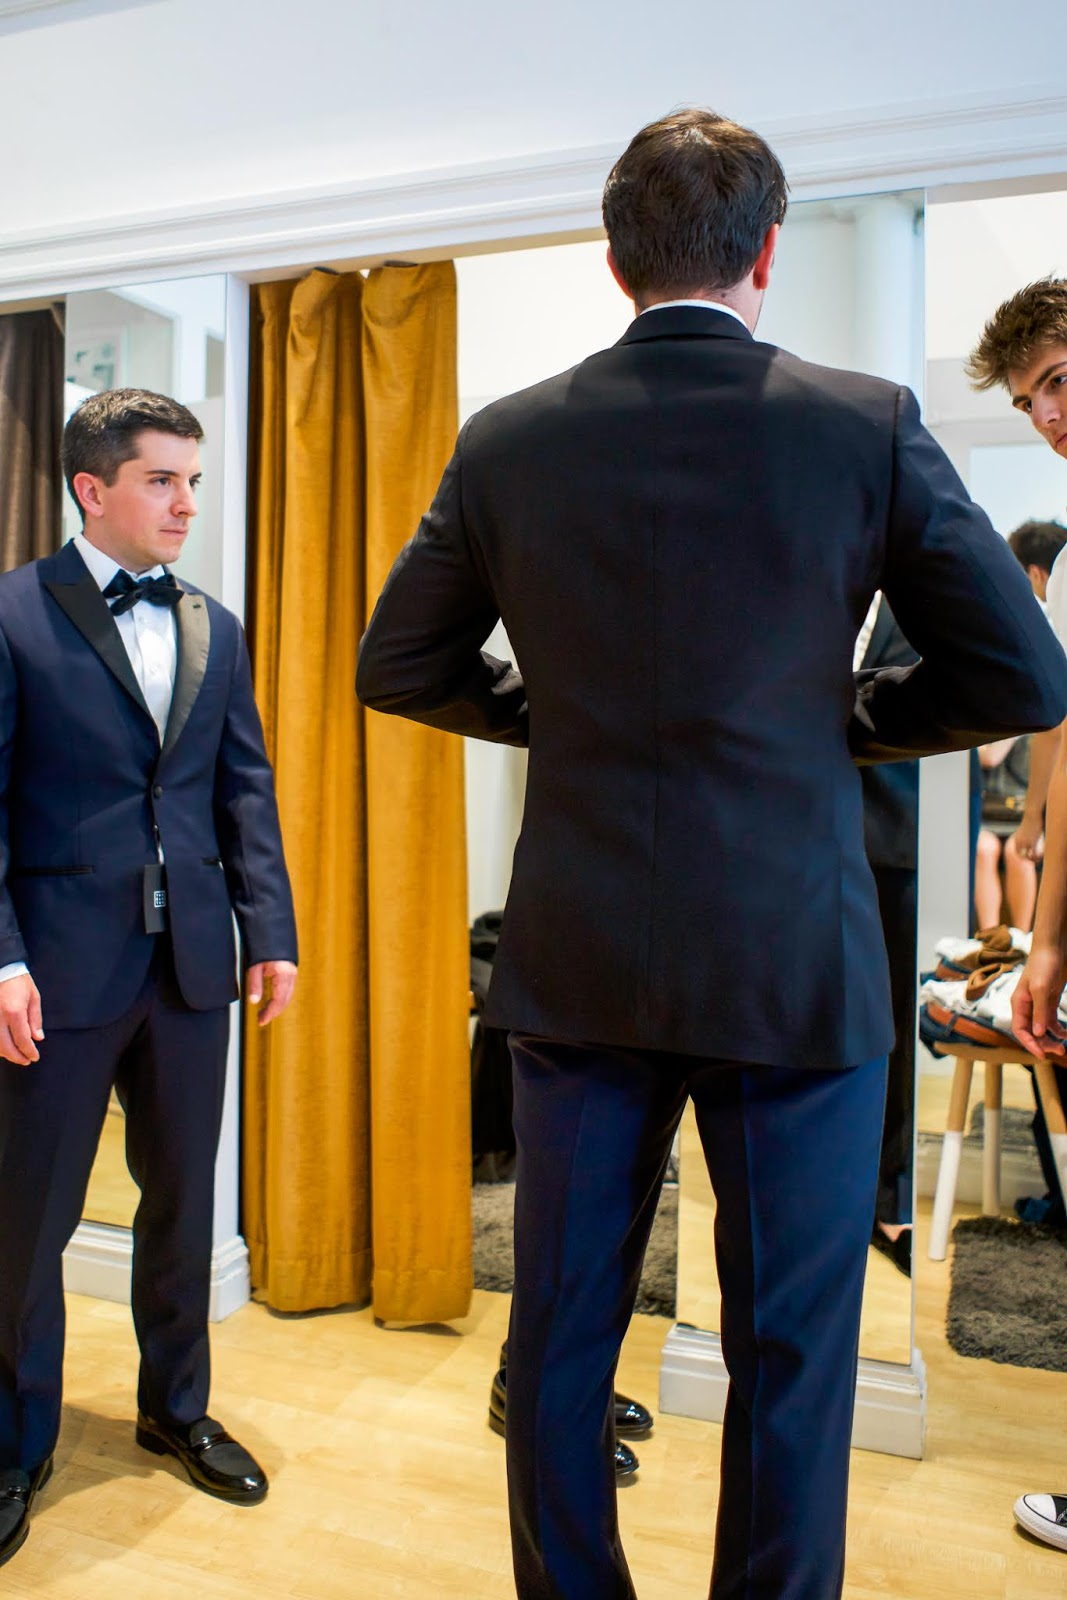 7002490bf68 What the Guys are Wearing to the Wedding | New York City Fashion and ...